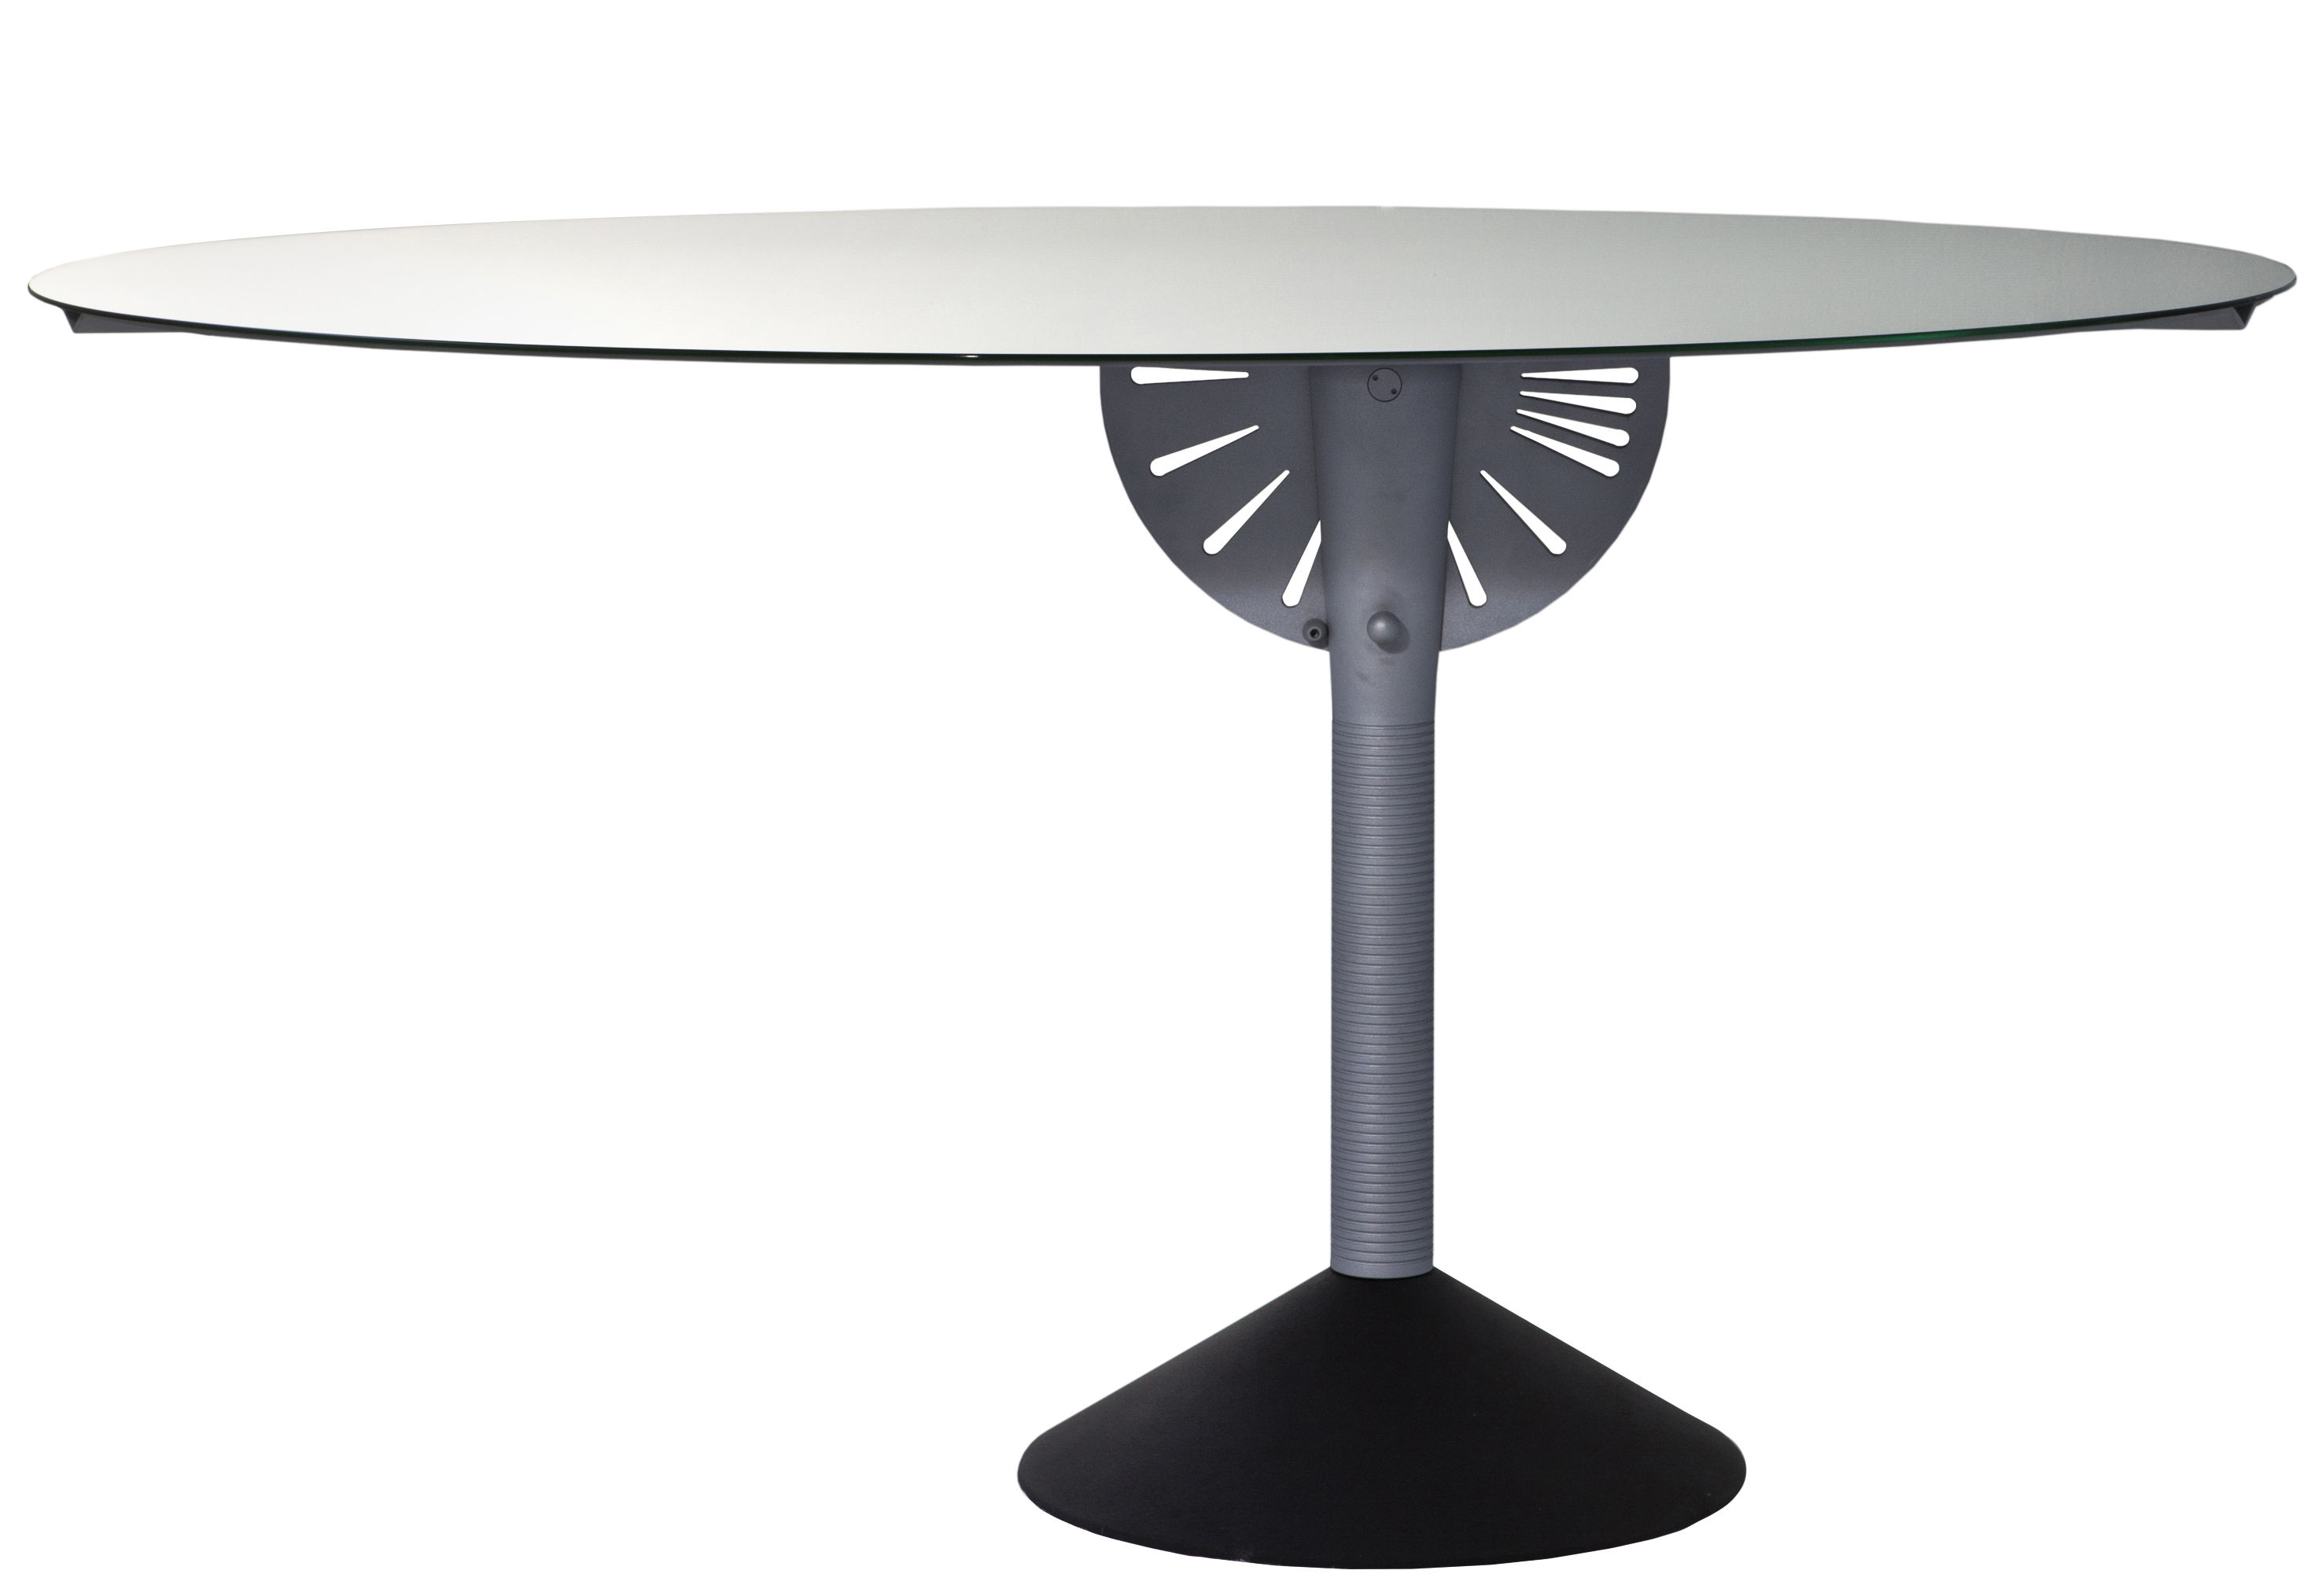 Pied Table Pliant Table Pliante Psiche Transformable En Miroir Réédition 1989 Driade